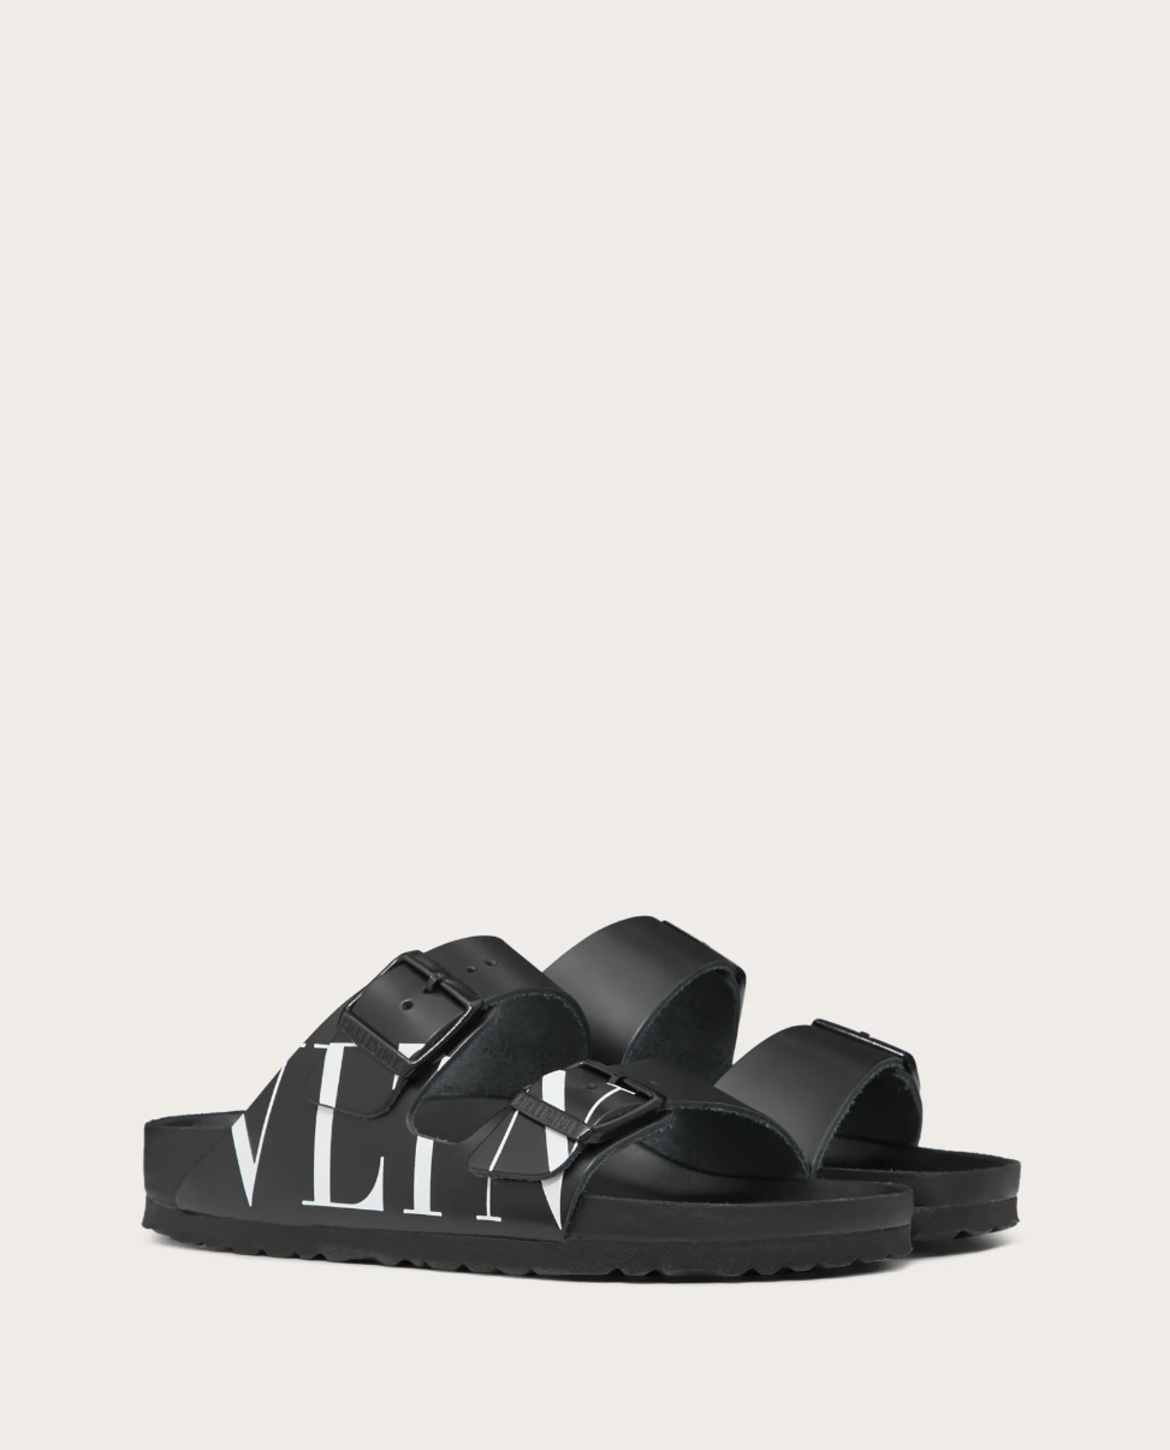 VLTN SLIDE SANDAL IN COLLABORATION WITH BIRKENSTOCK HK$3,900